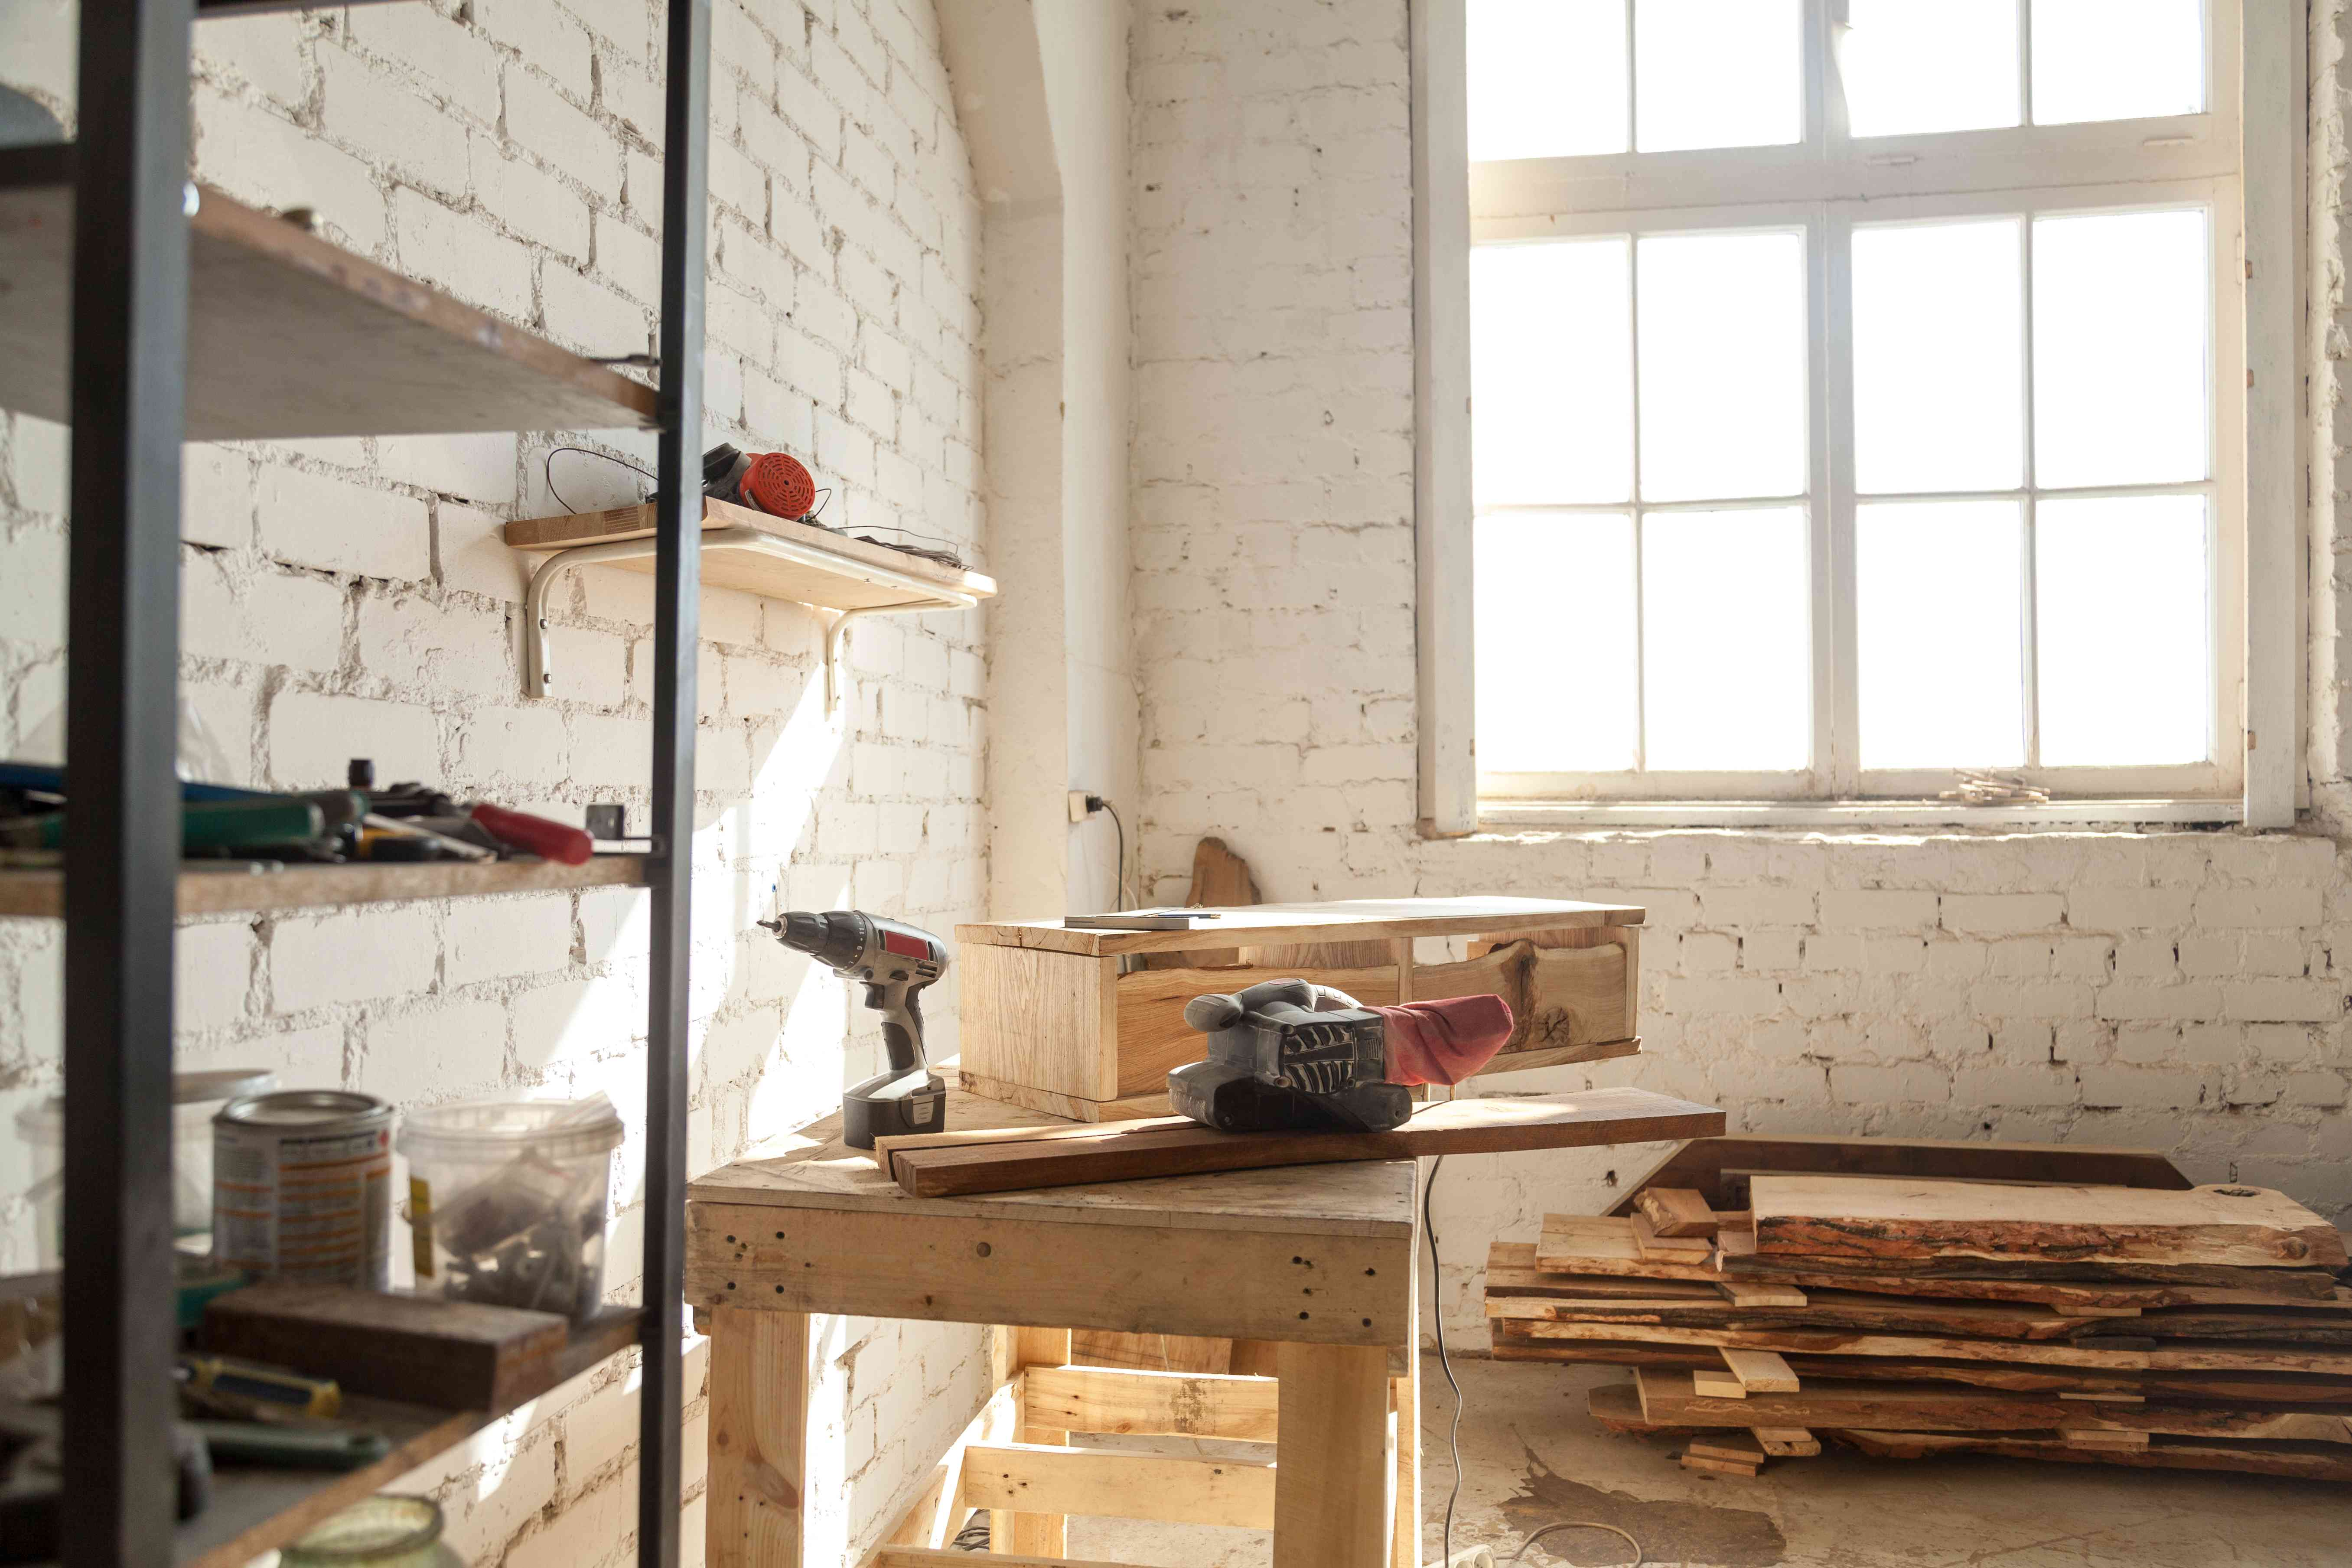 Carpentry workshop interior, joinery shop with tools equipment for woodwork